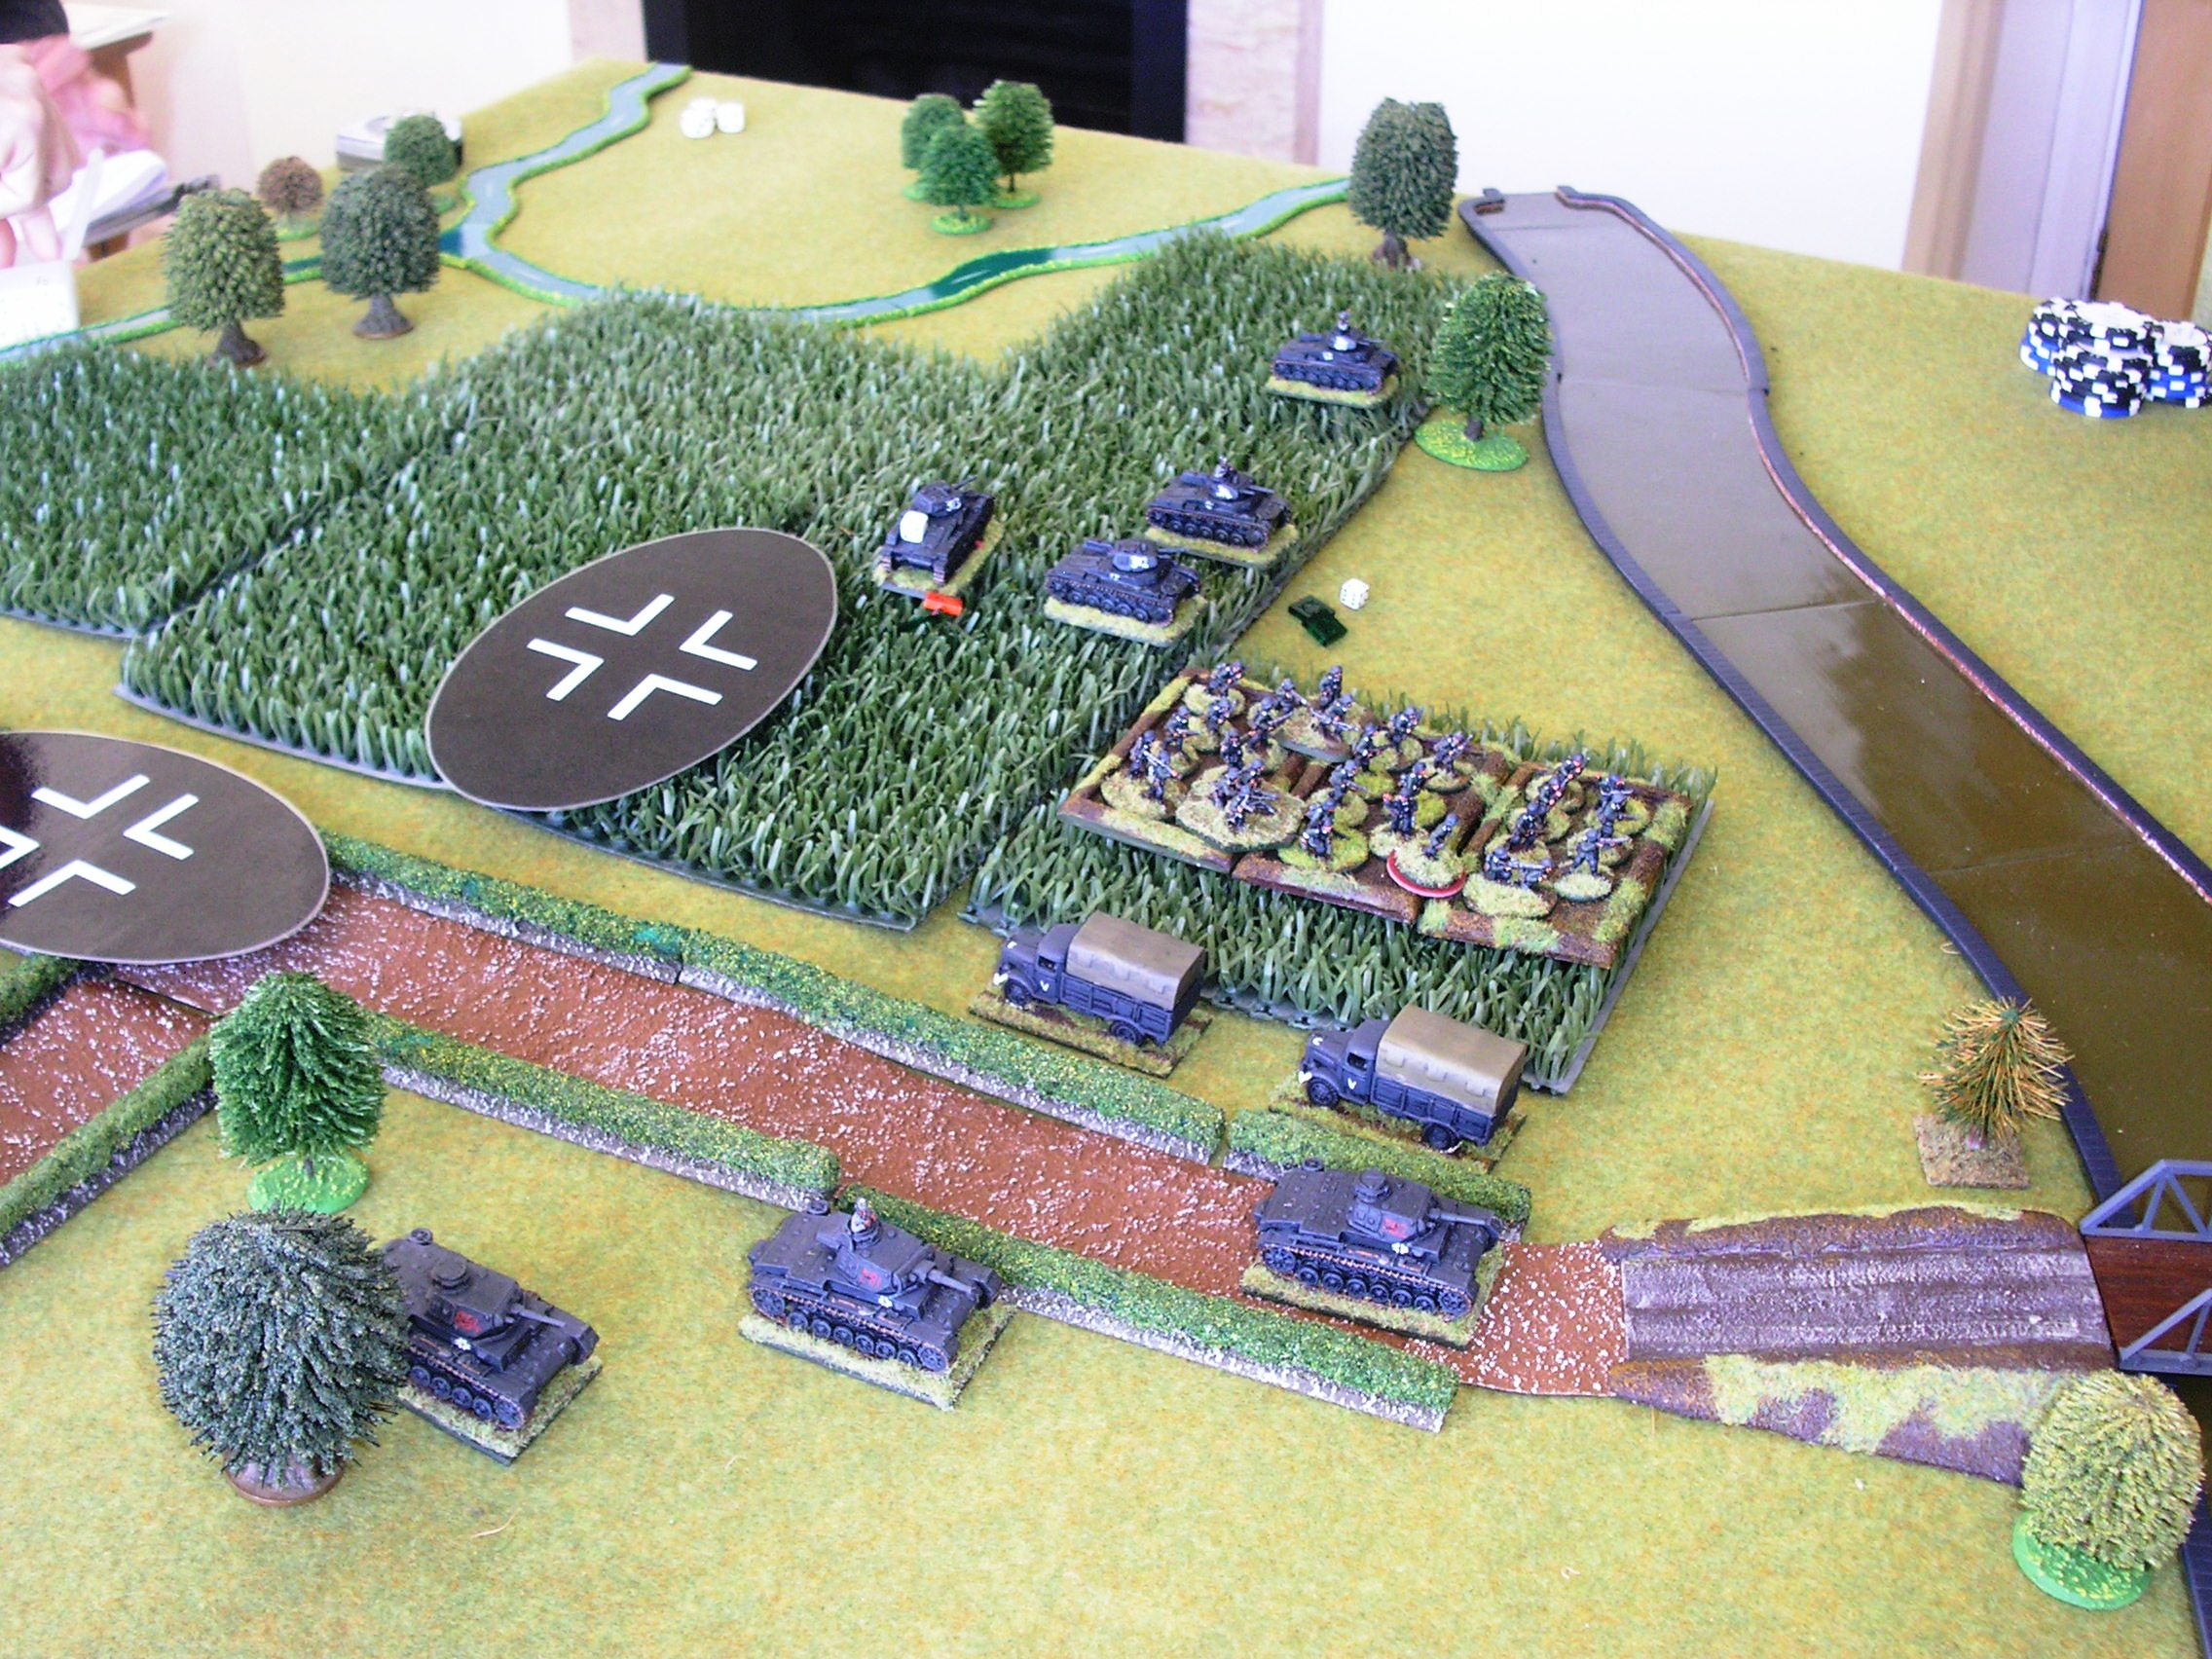 Up come the Panzer IIIs